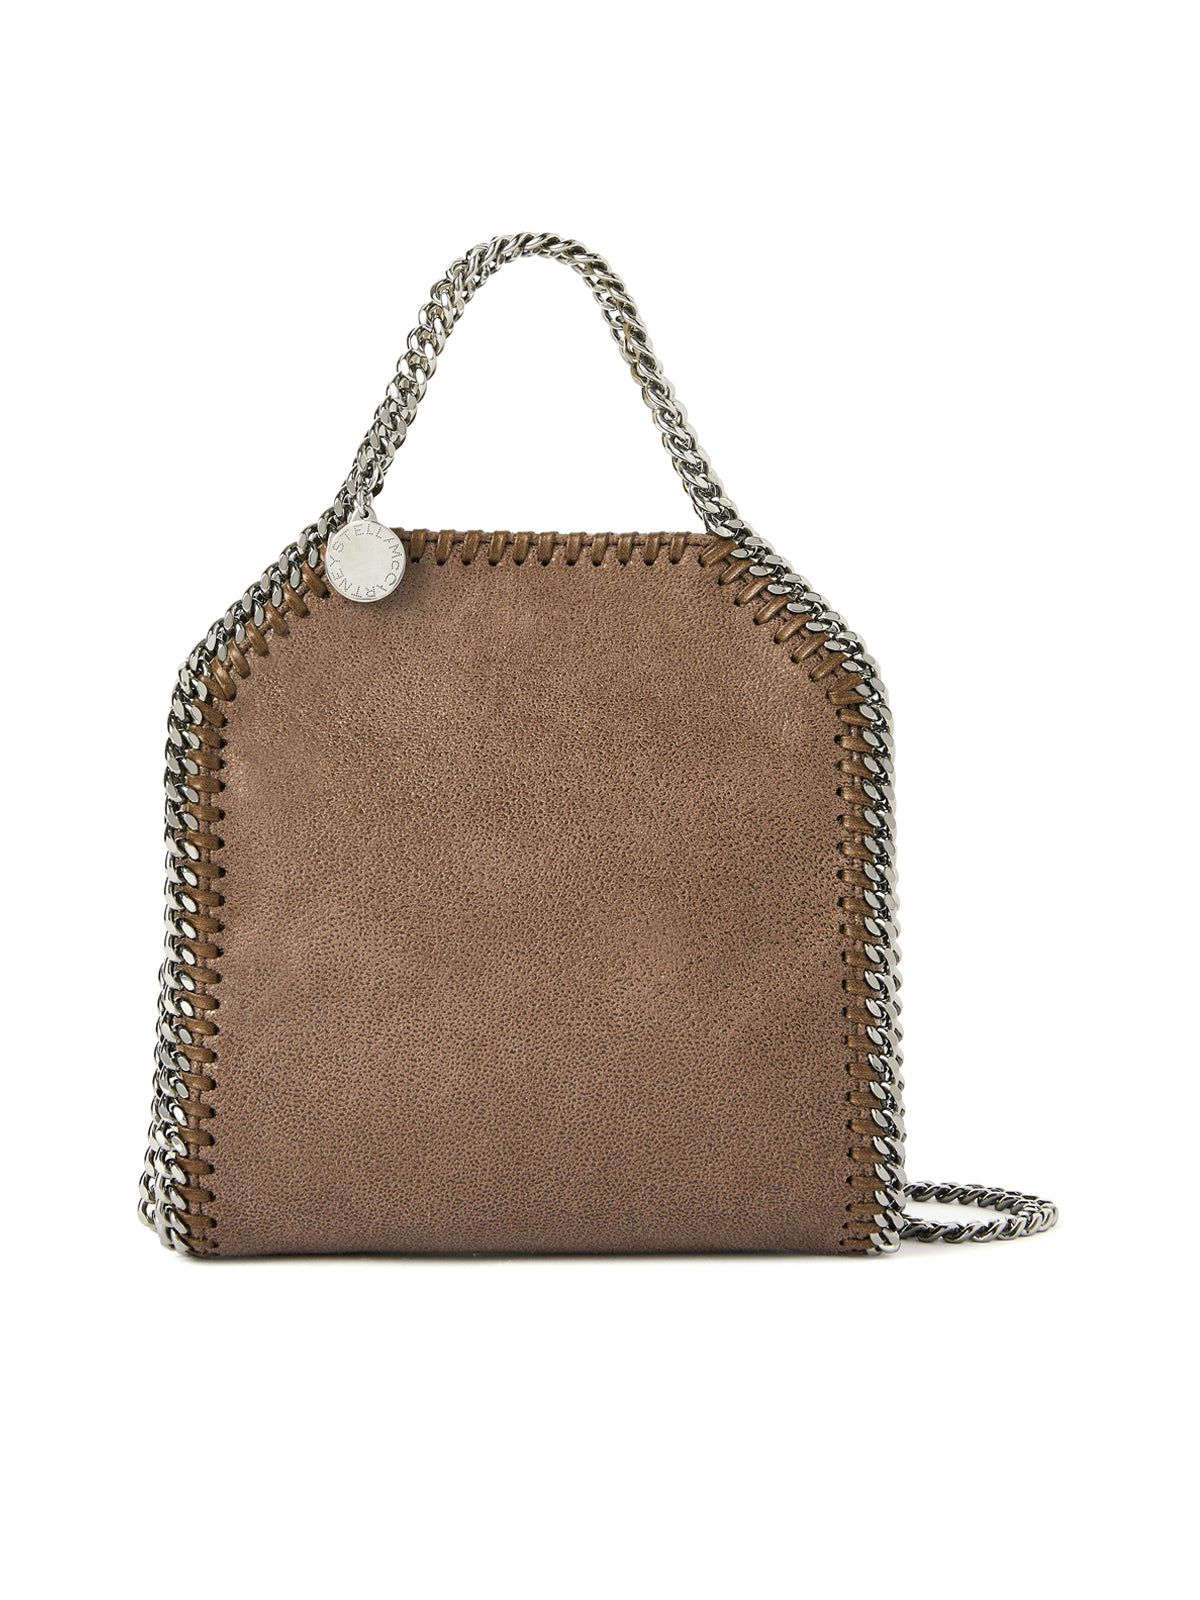 FALABELLA MINI BAG IN ECO LEATHER WITH 3 CHAINS